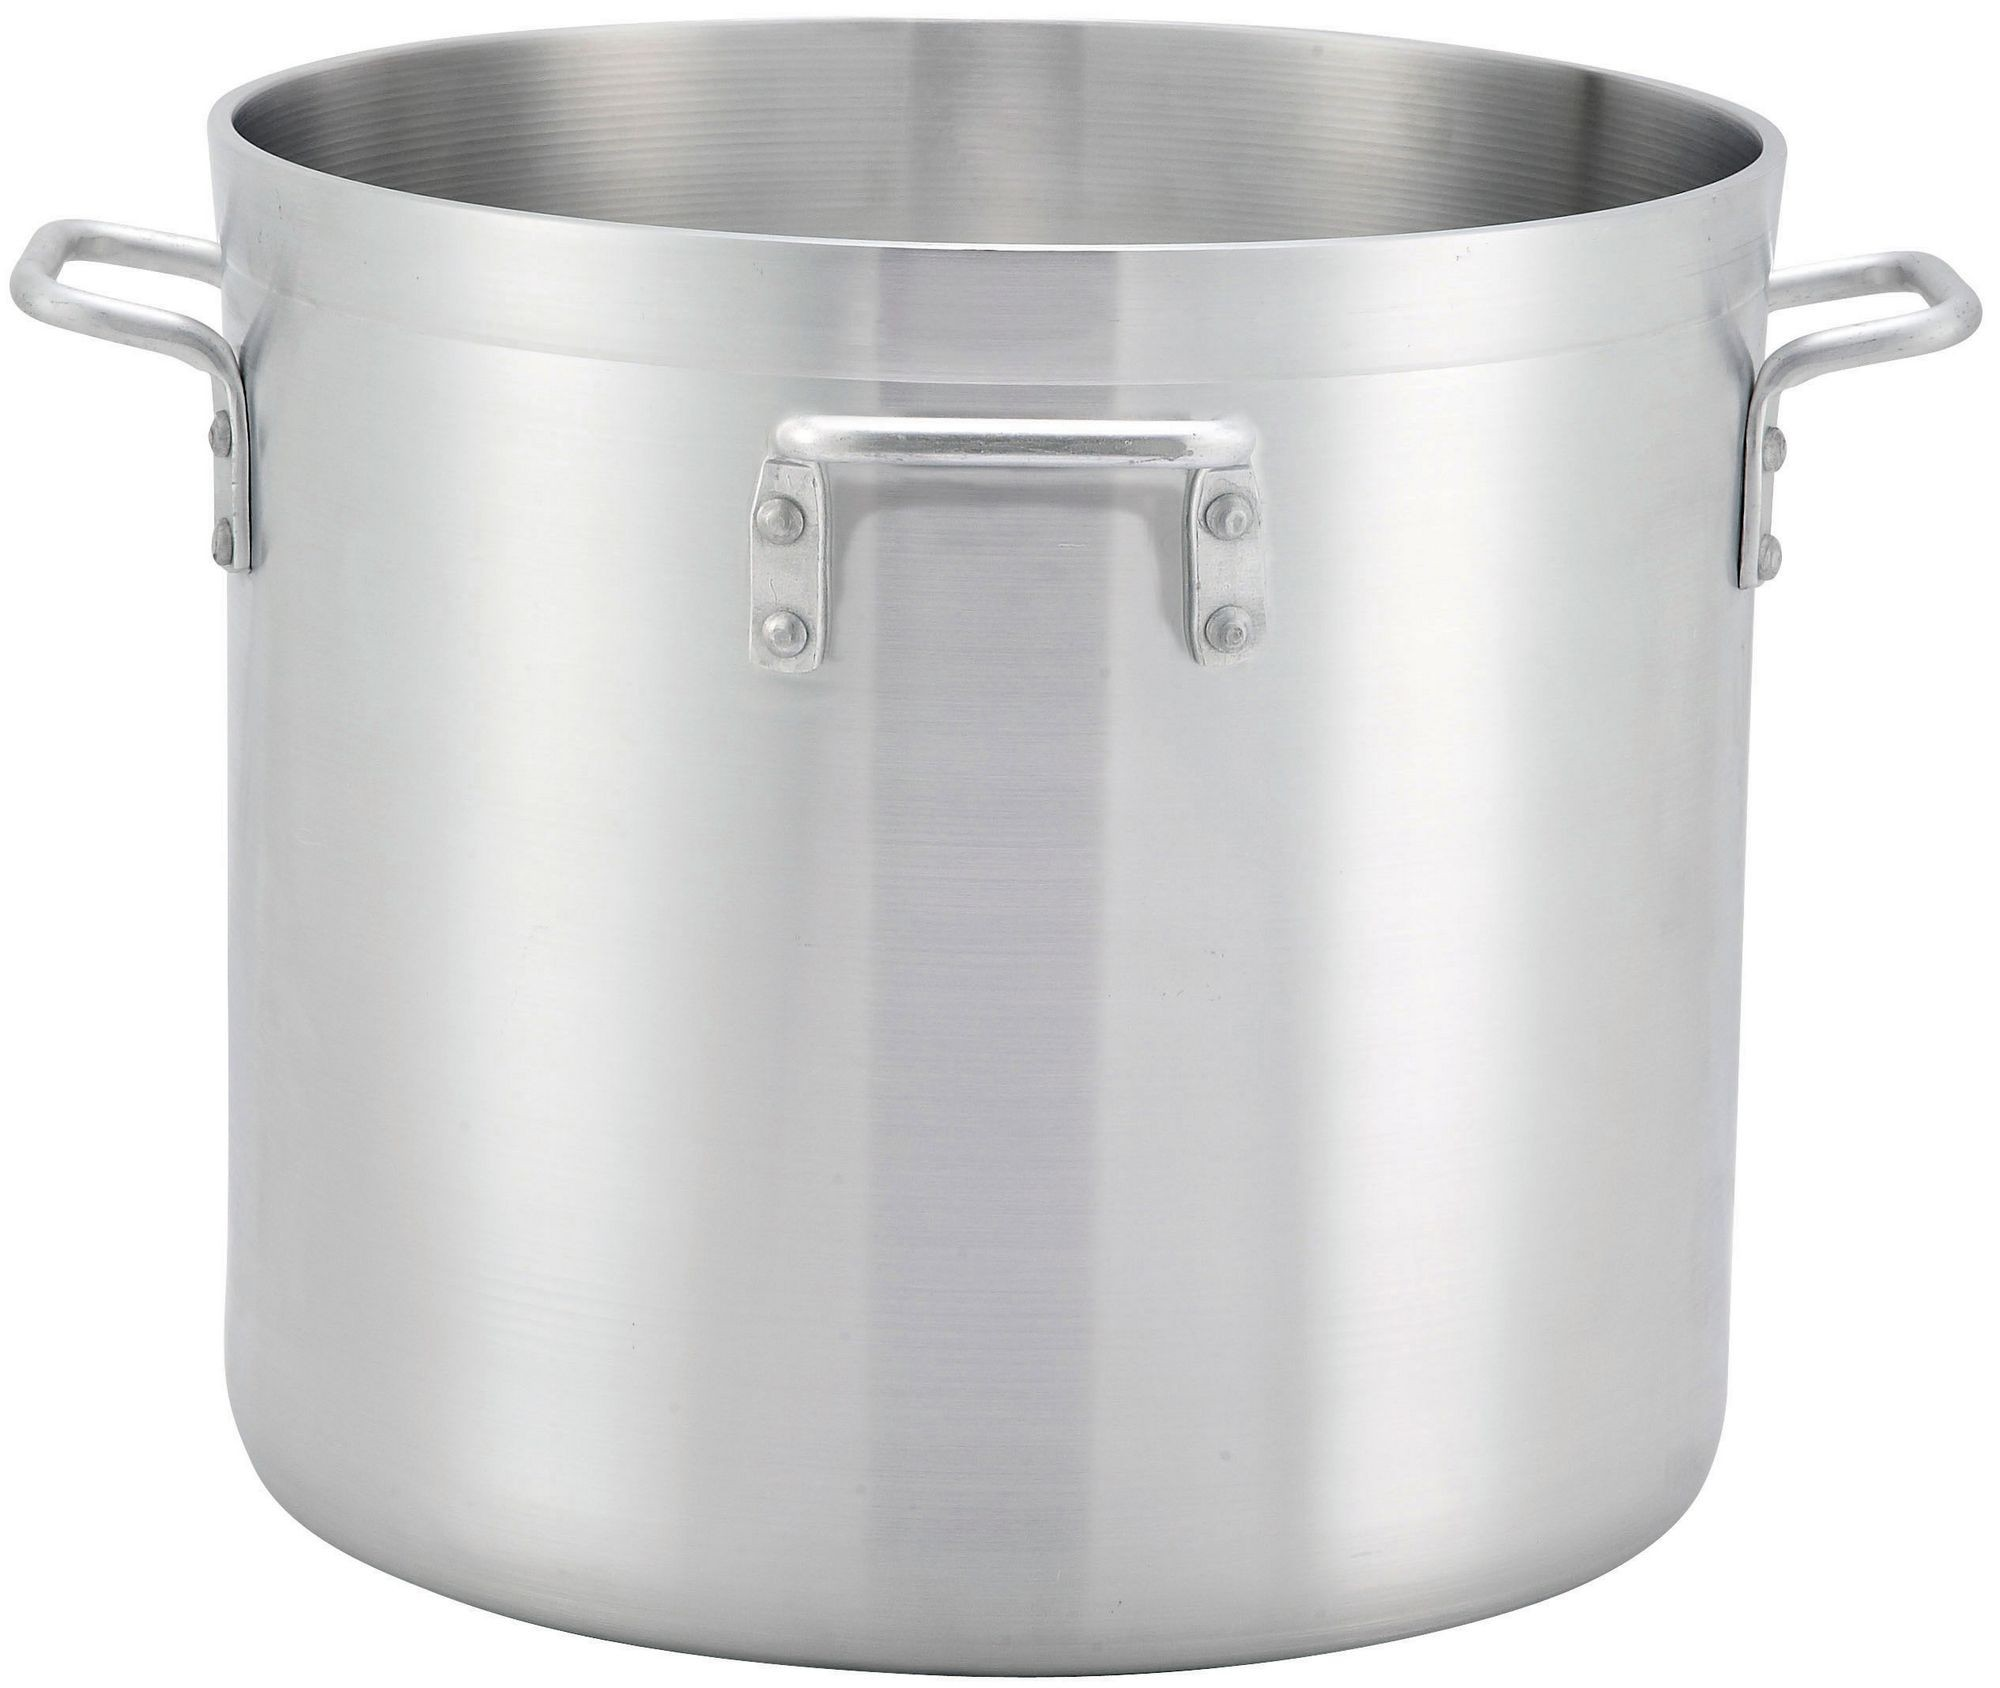 Winco ALHP-120H Precision Aluminum 120 Qt. Stock Pot with 4 Handles